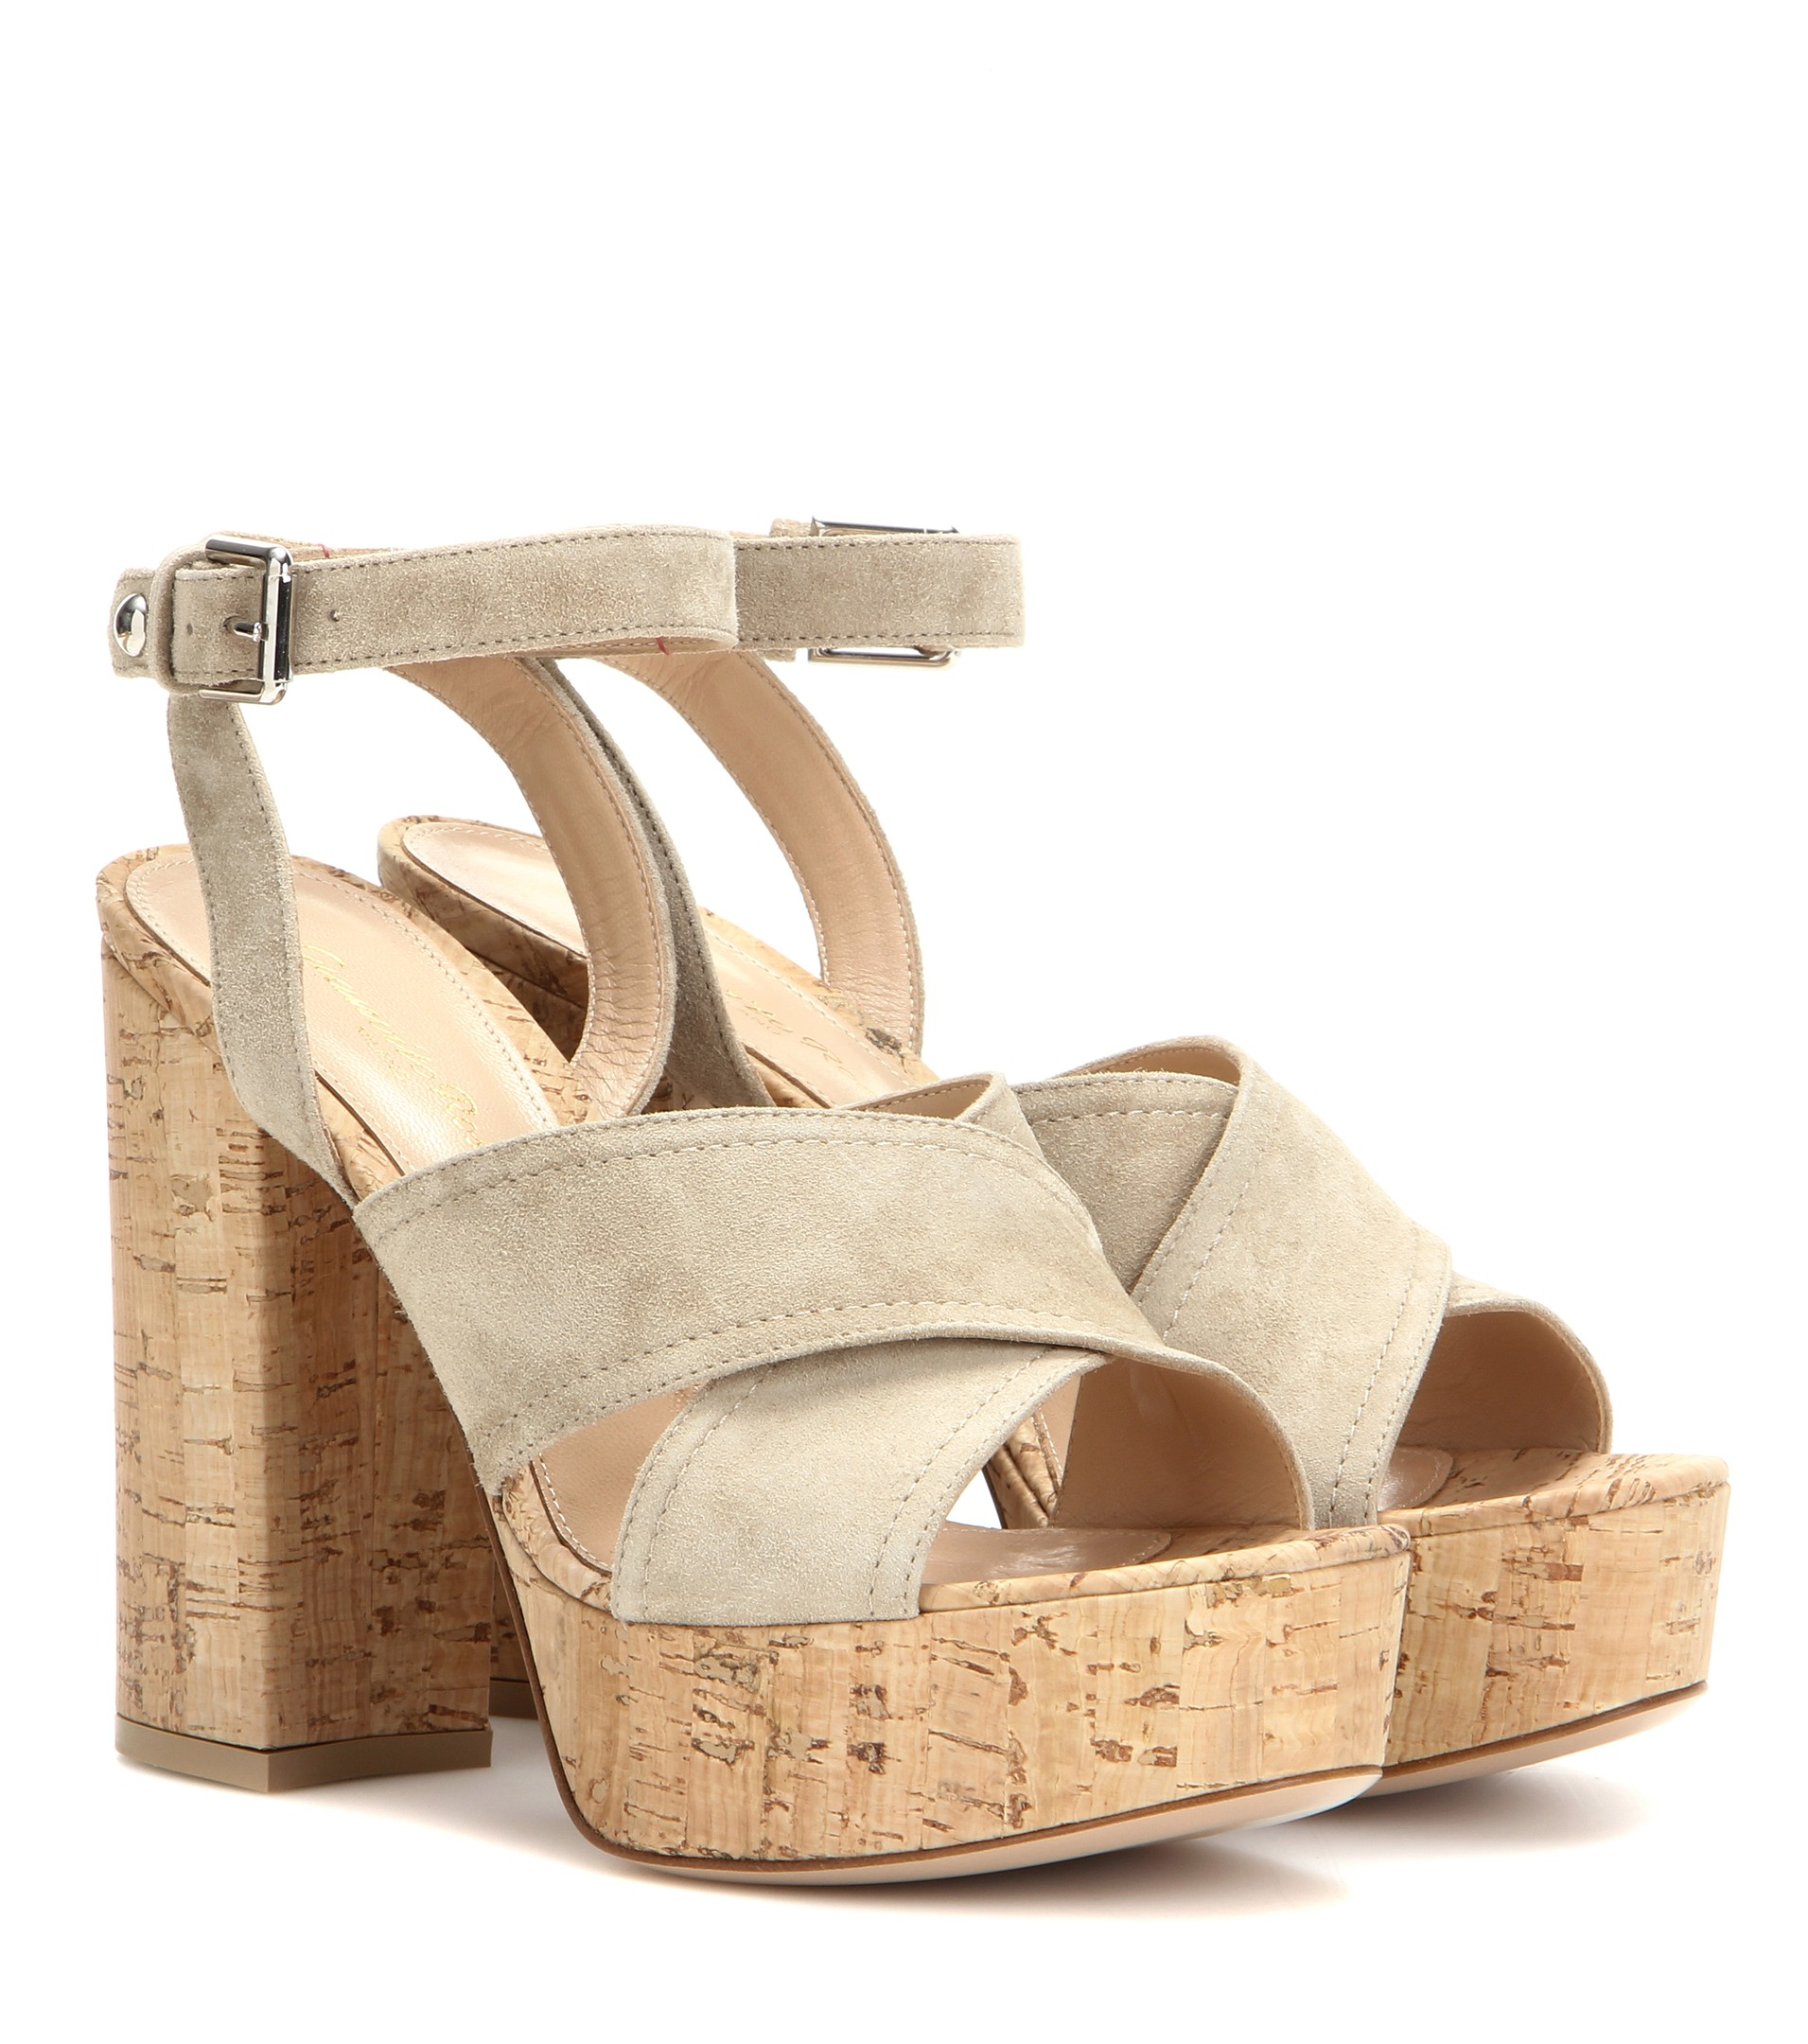 Gianvito Rossi Suede Platform Sandals buy cheap eastbay fVgrGrV